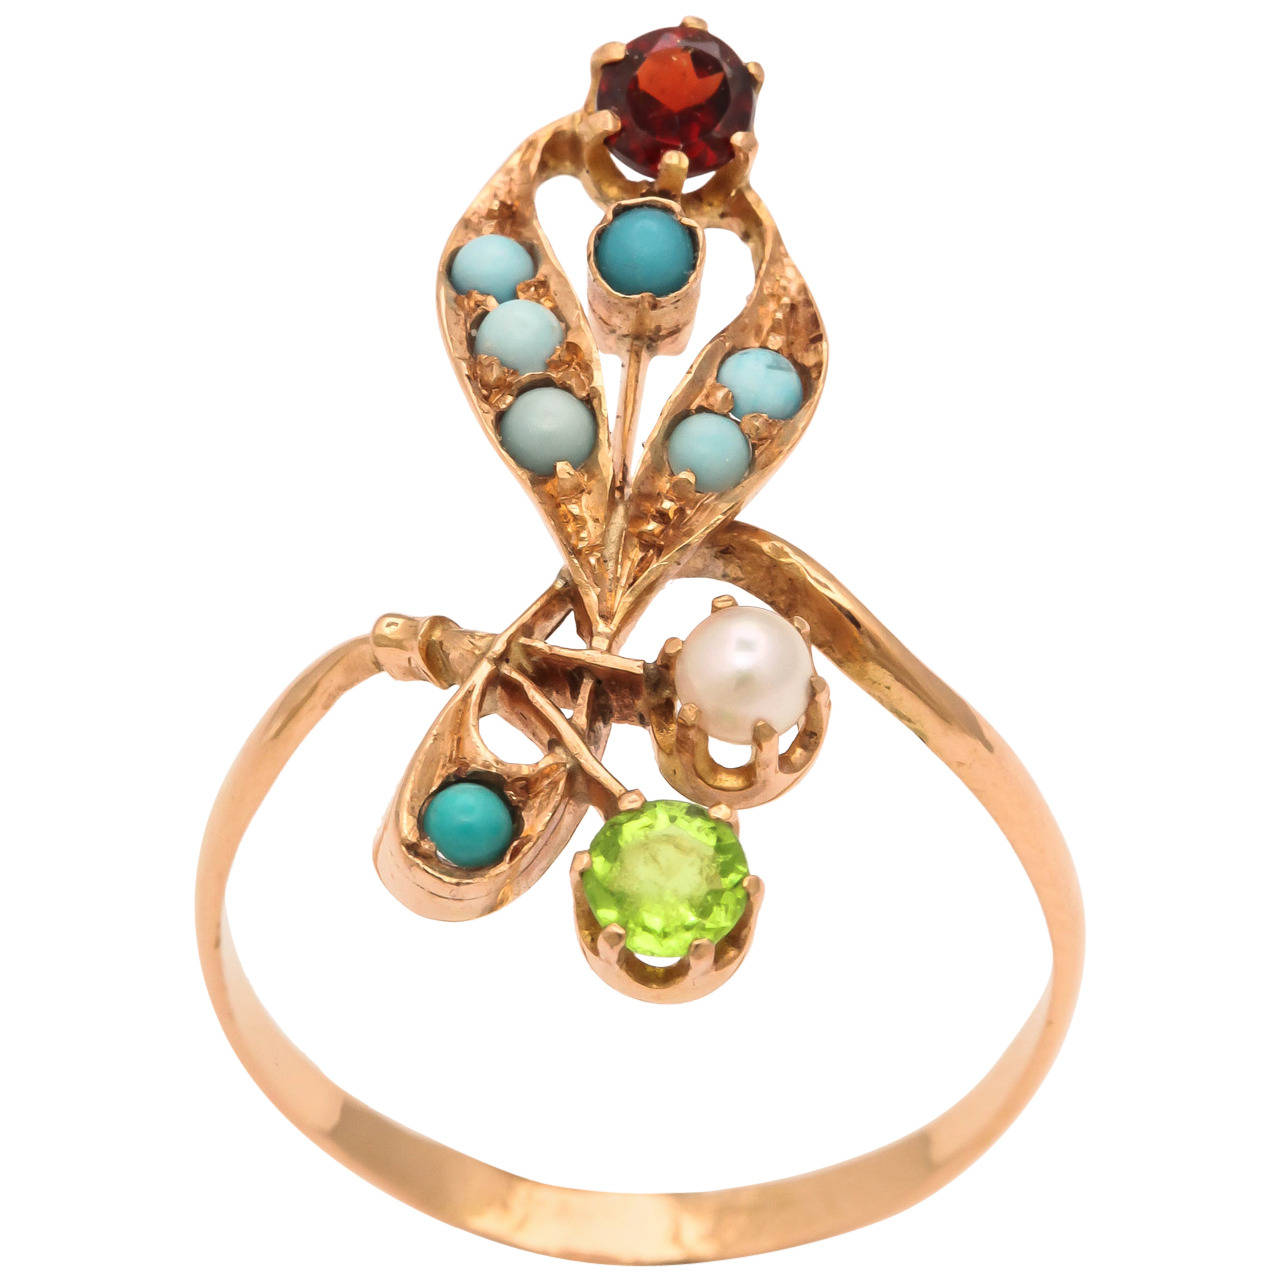 Russian Art Nouveau Gem Set Gold Floral Ring 1